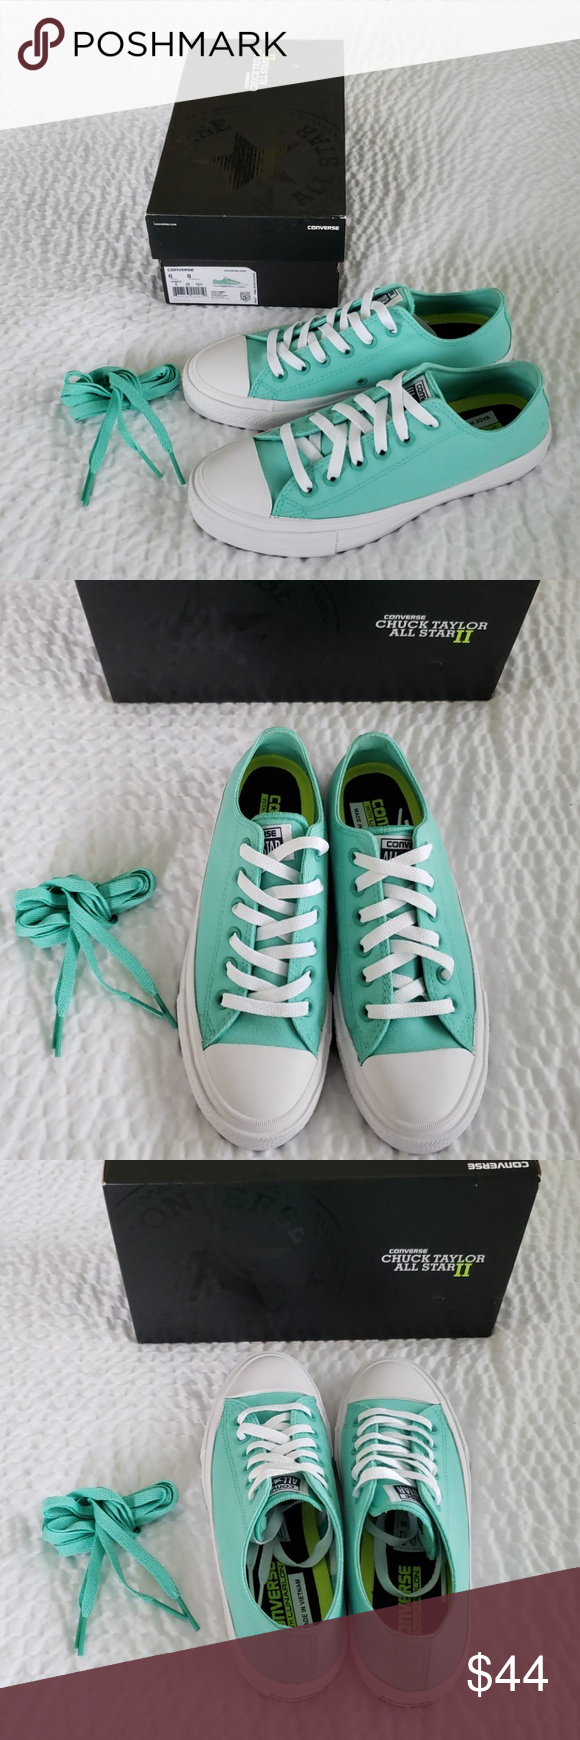 cdc4434998dc Teal Converse (Lunarlon) New in box Converse Teal Navy WH Women s size 8. Mens  size 6. These are so darn awesome! Bought them and never wore them.